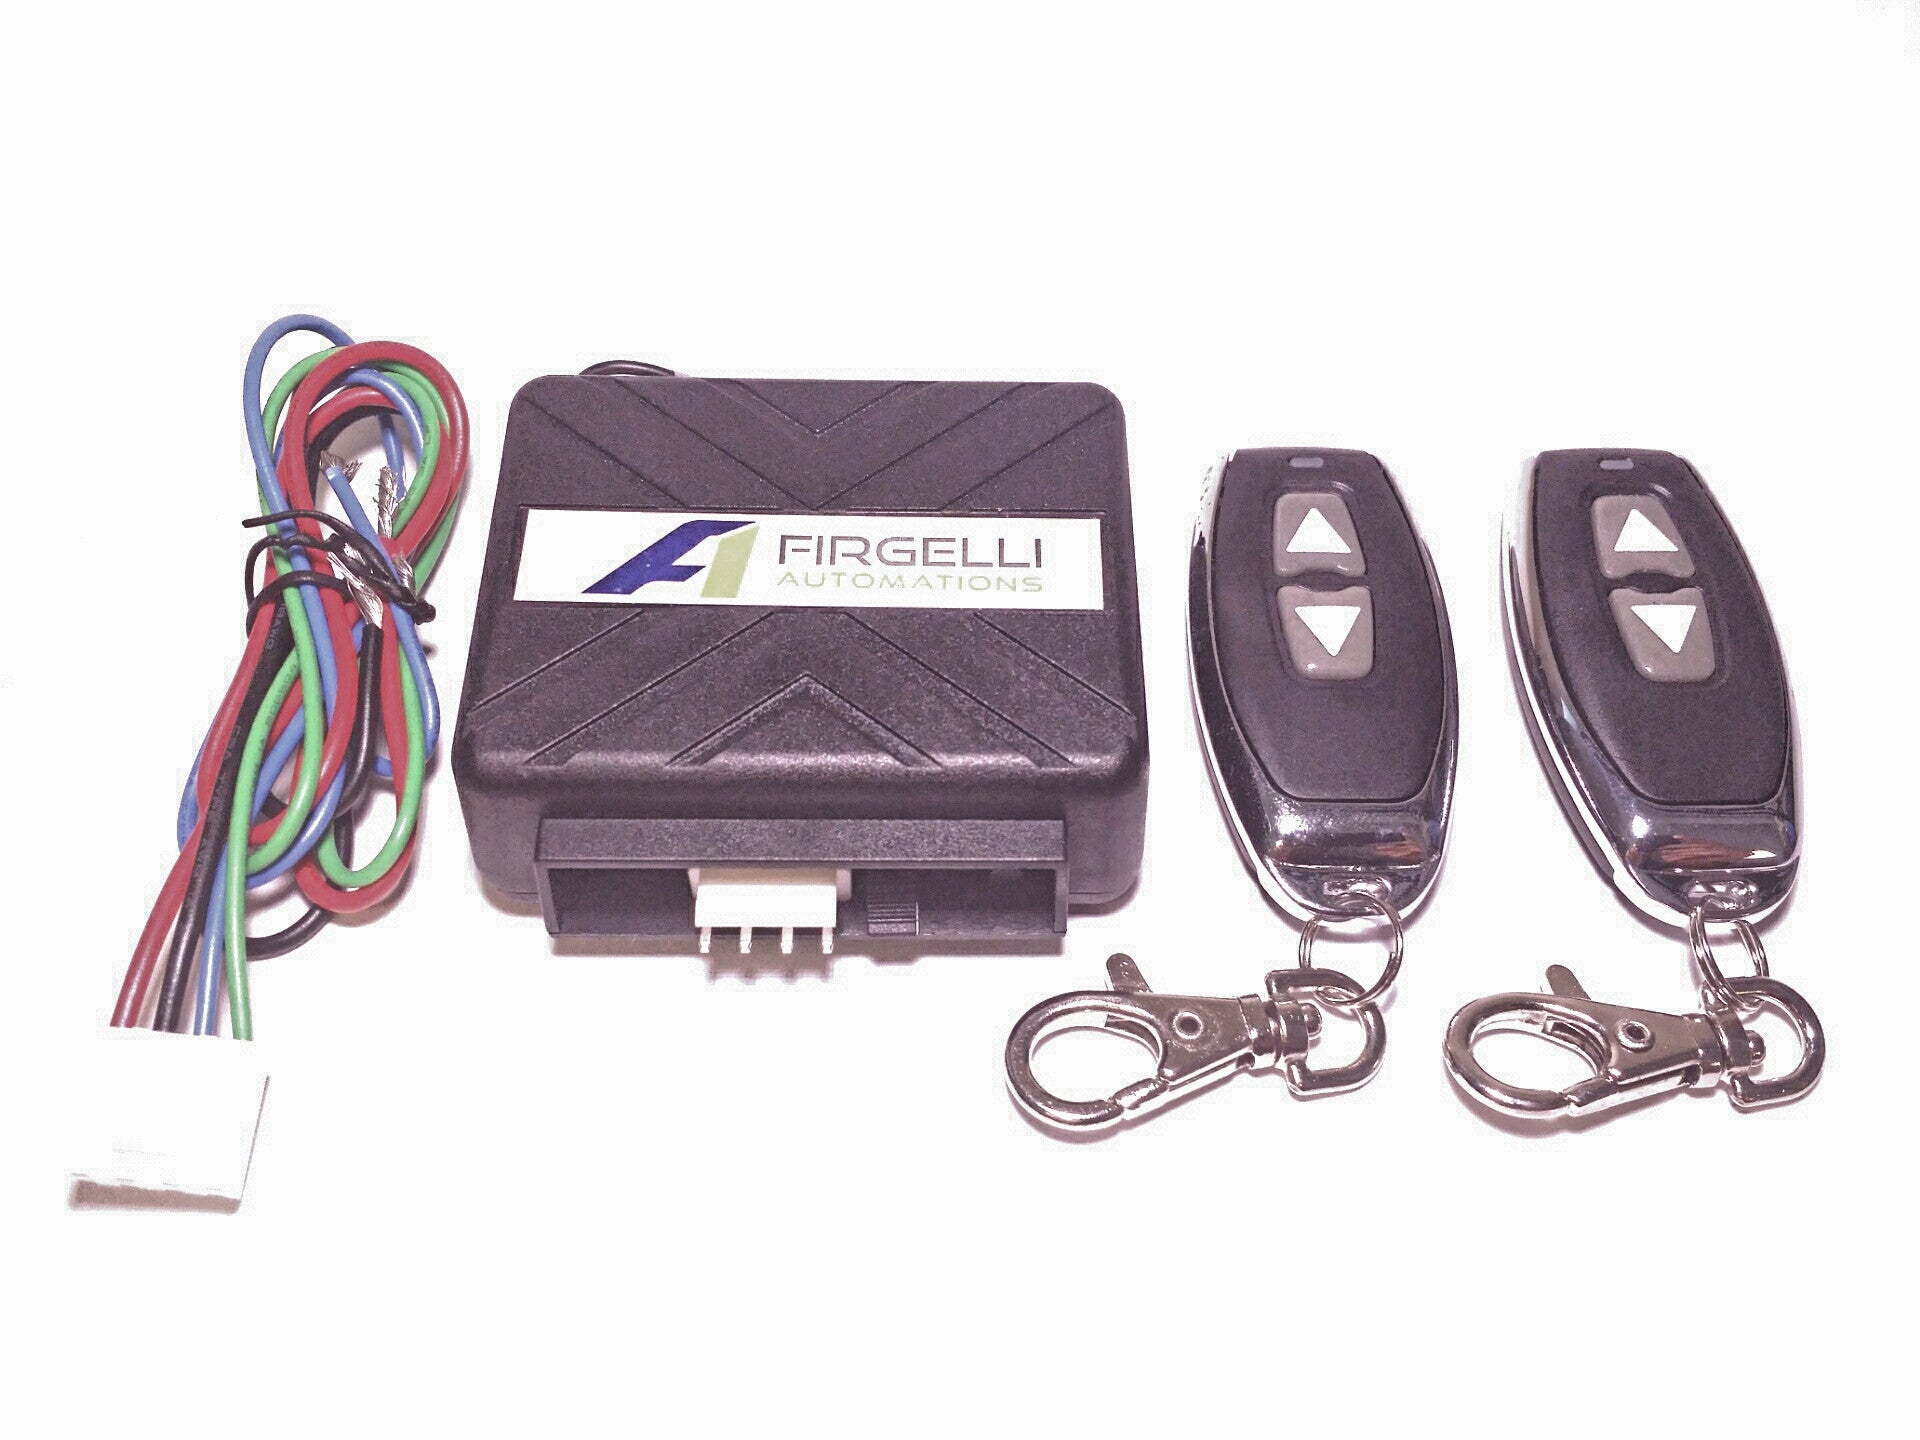 2 channel remote control system firgelli actuators voted best in 2 channel remote control system